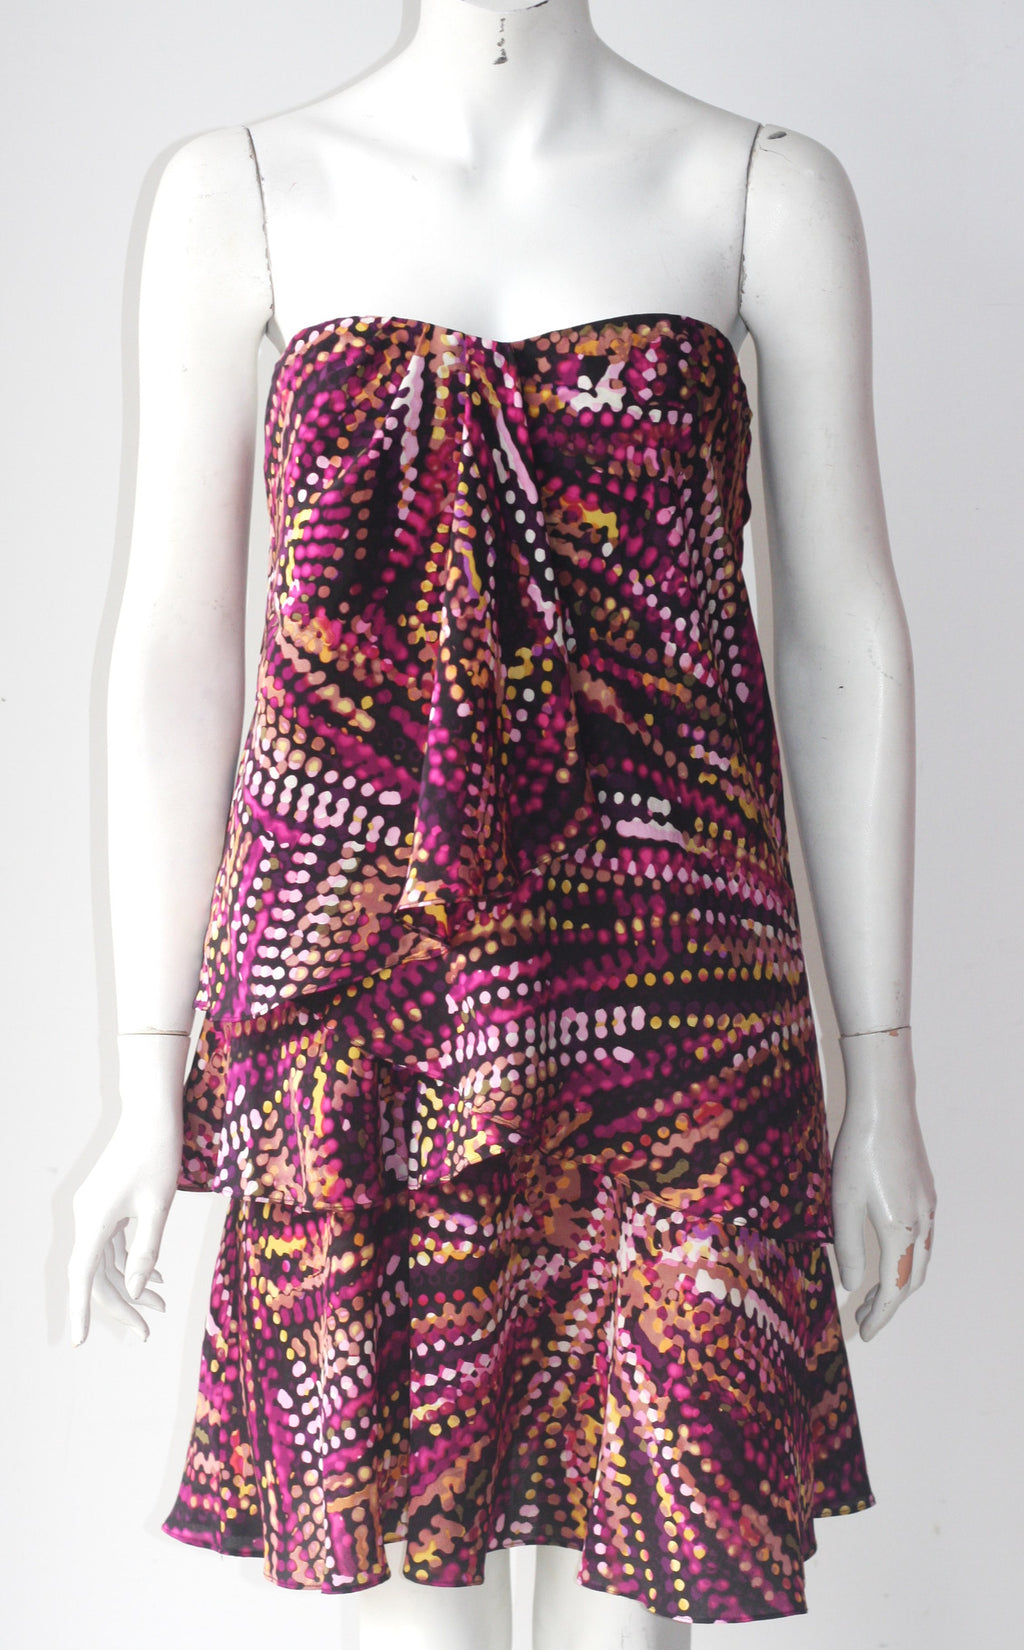 BCBG MaxAzria Multi-Color Strapless Dress - Joyce's Closet  - 1